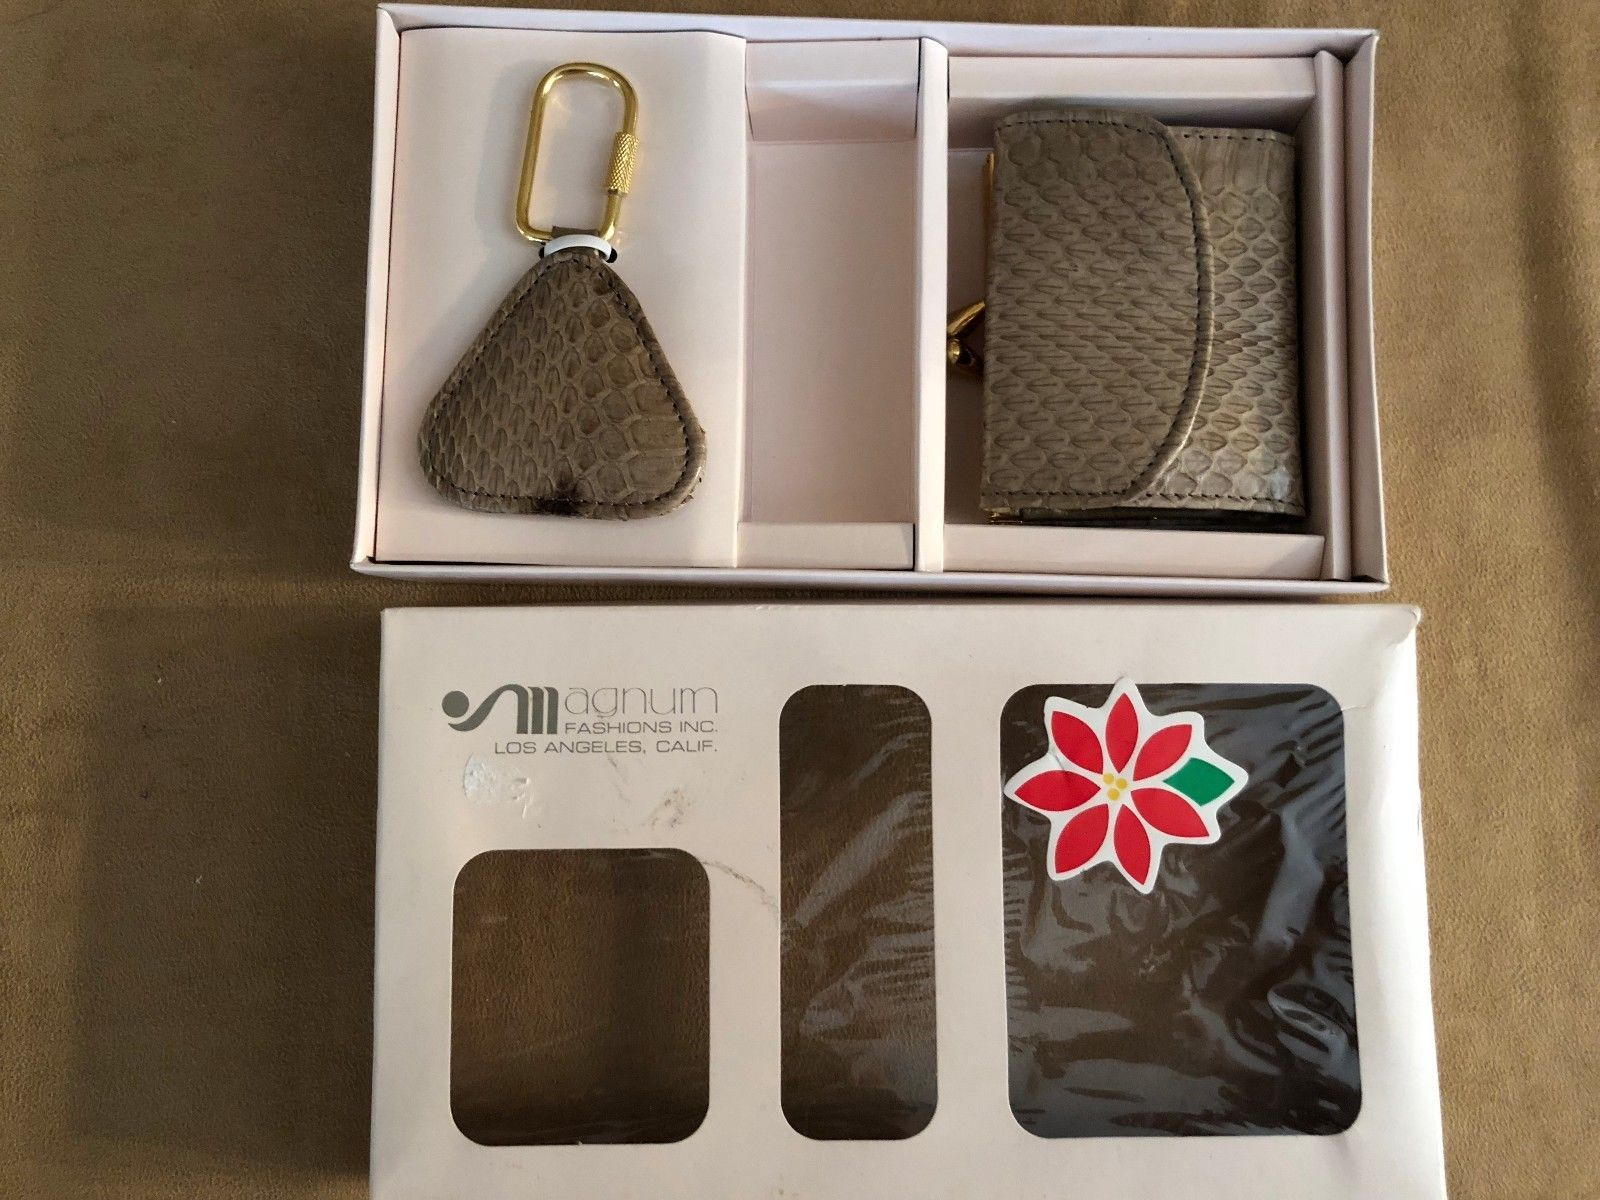 Vintage Magnum women gift set key chain and wallet coin purse boxed